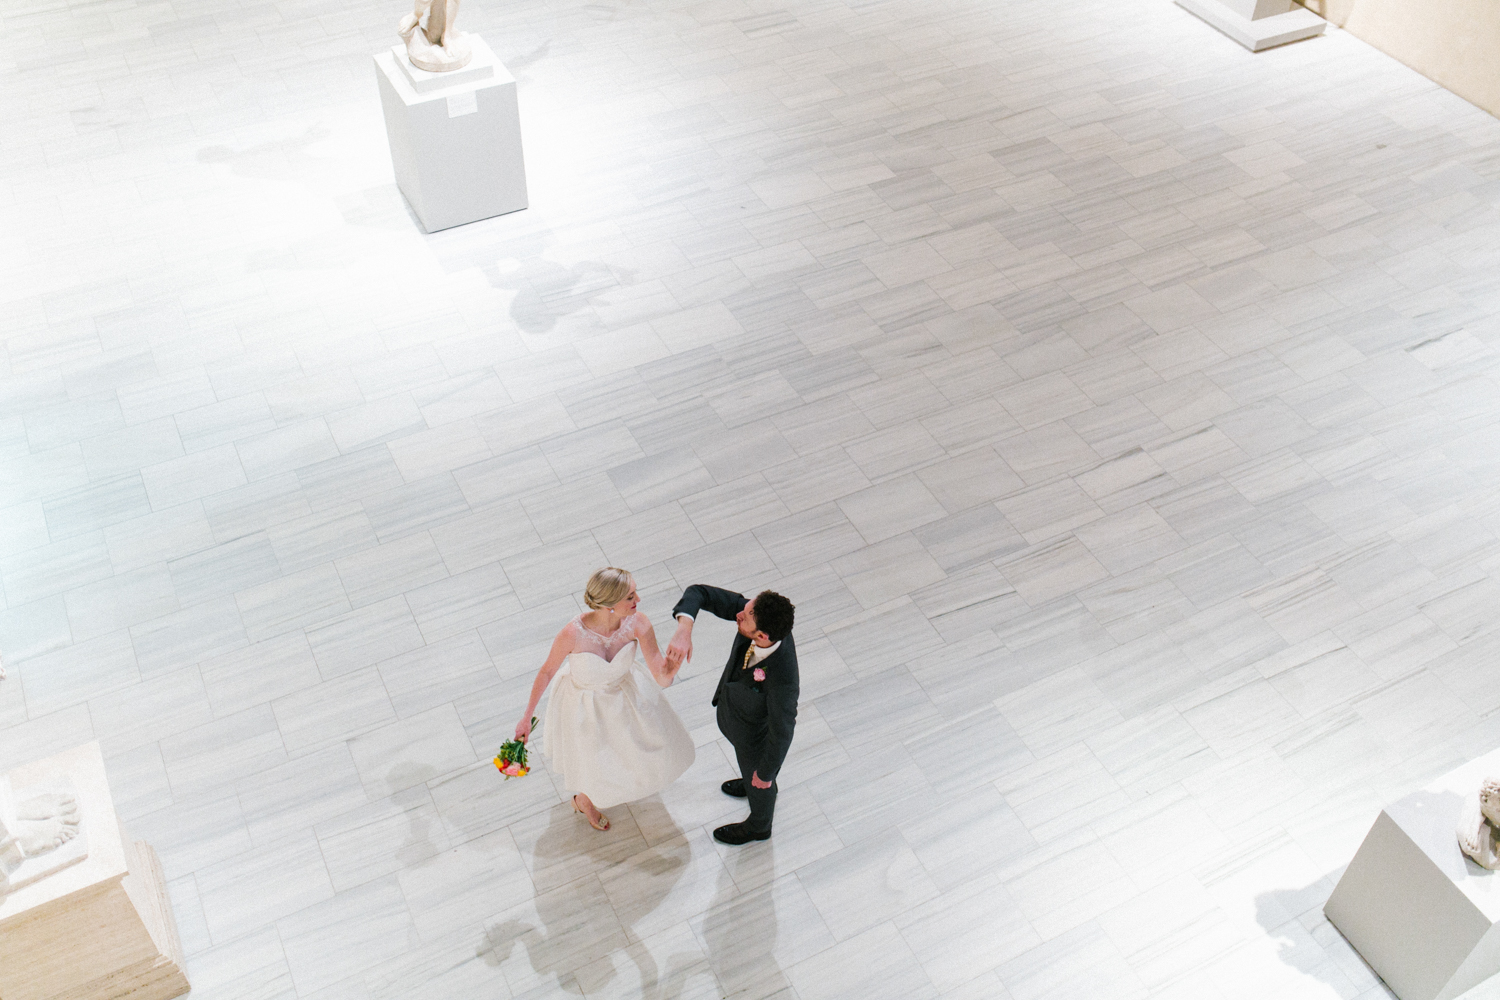 Metropolitan Museum of Art Wedding